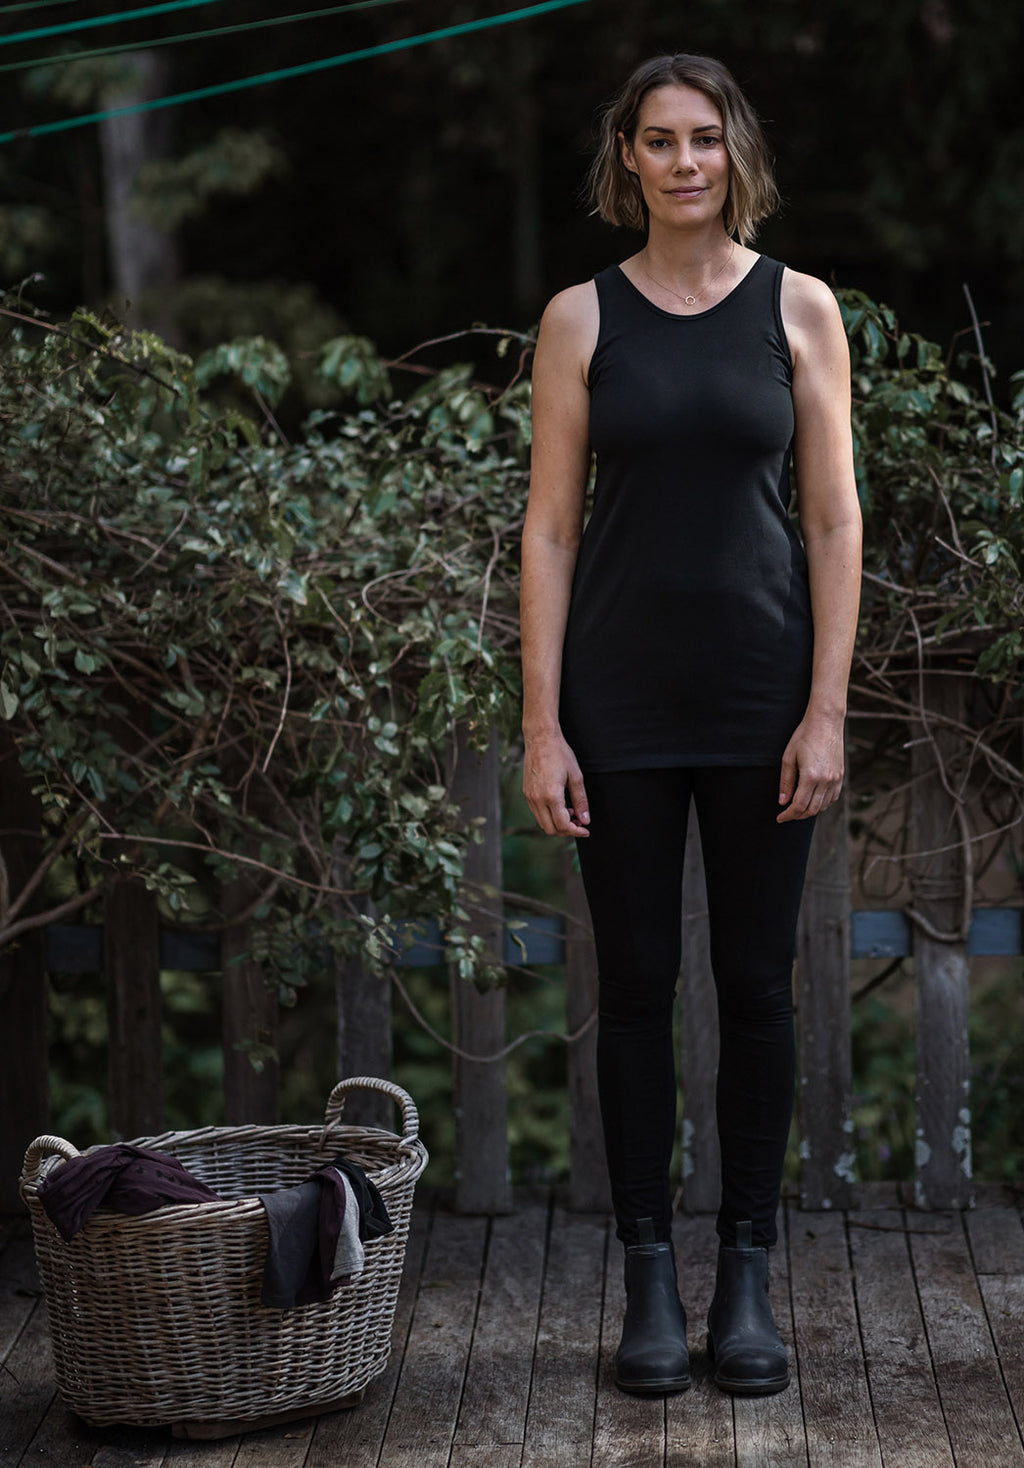 cotton sportswear online, vegan yogawear online, vegan sportswear, ethical fashion online, sustainable fashion online, sustainable clothing australia, boutique tunics australia, sustainable clothing online, boutique fashion online,